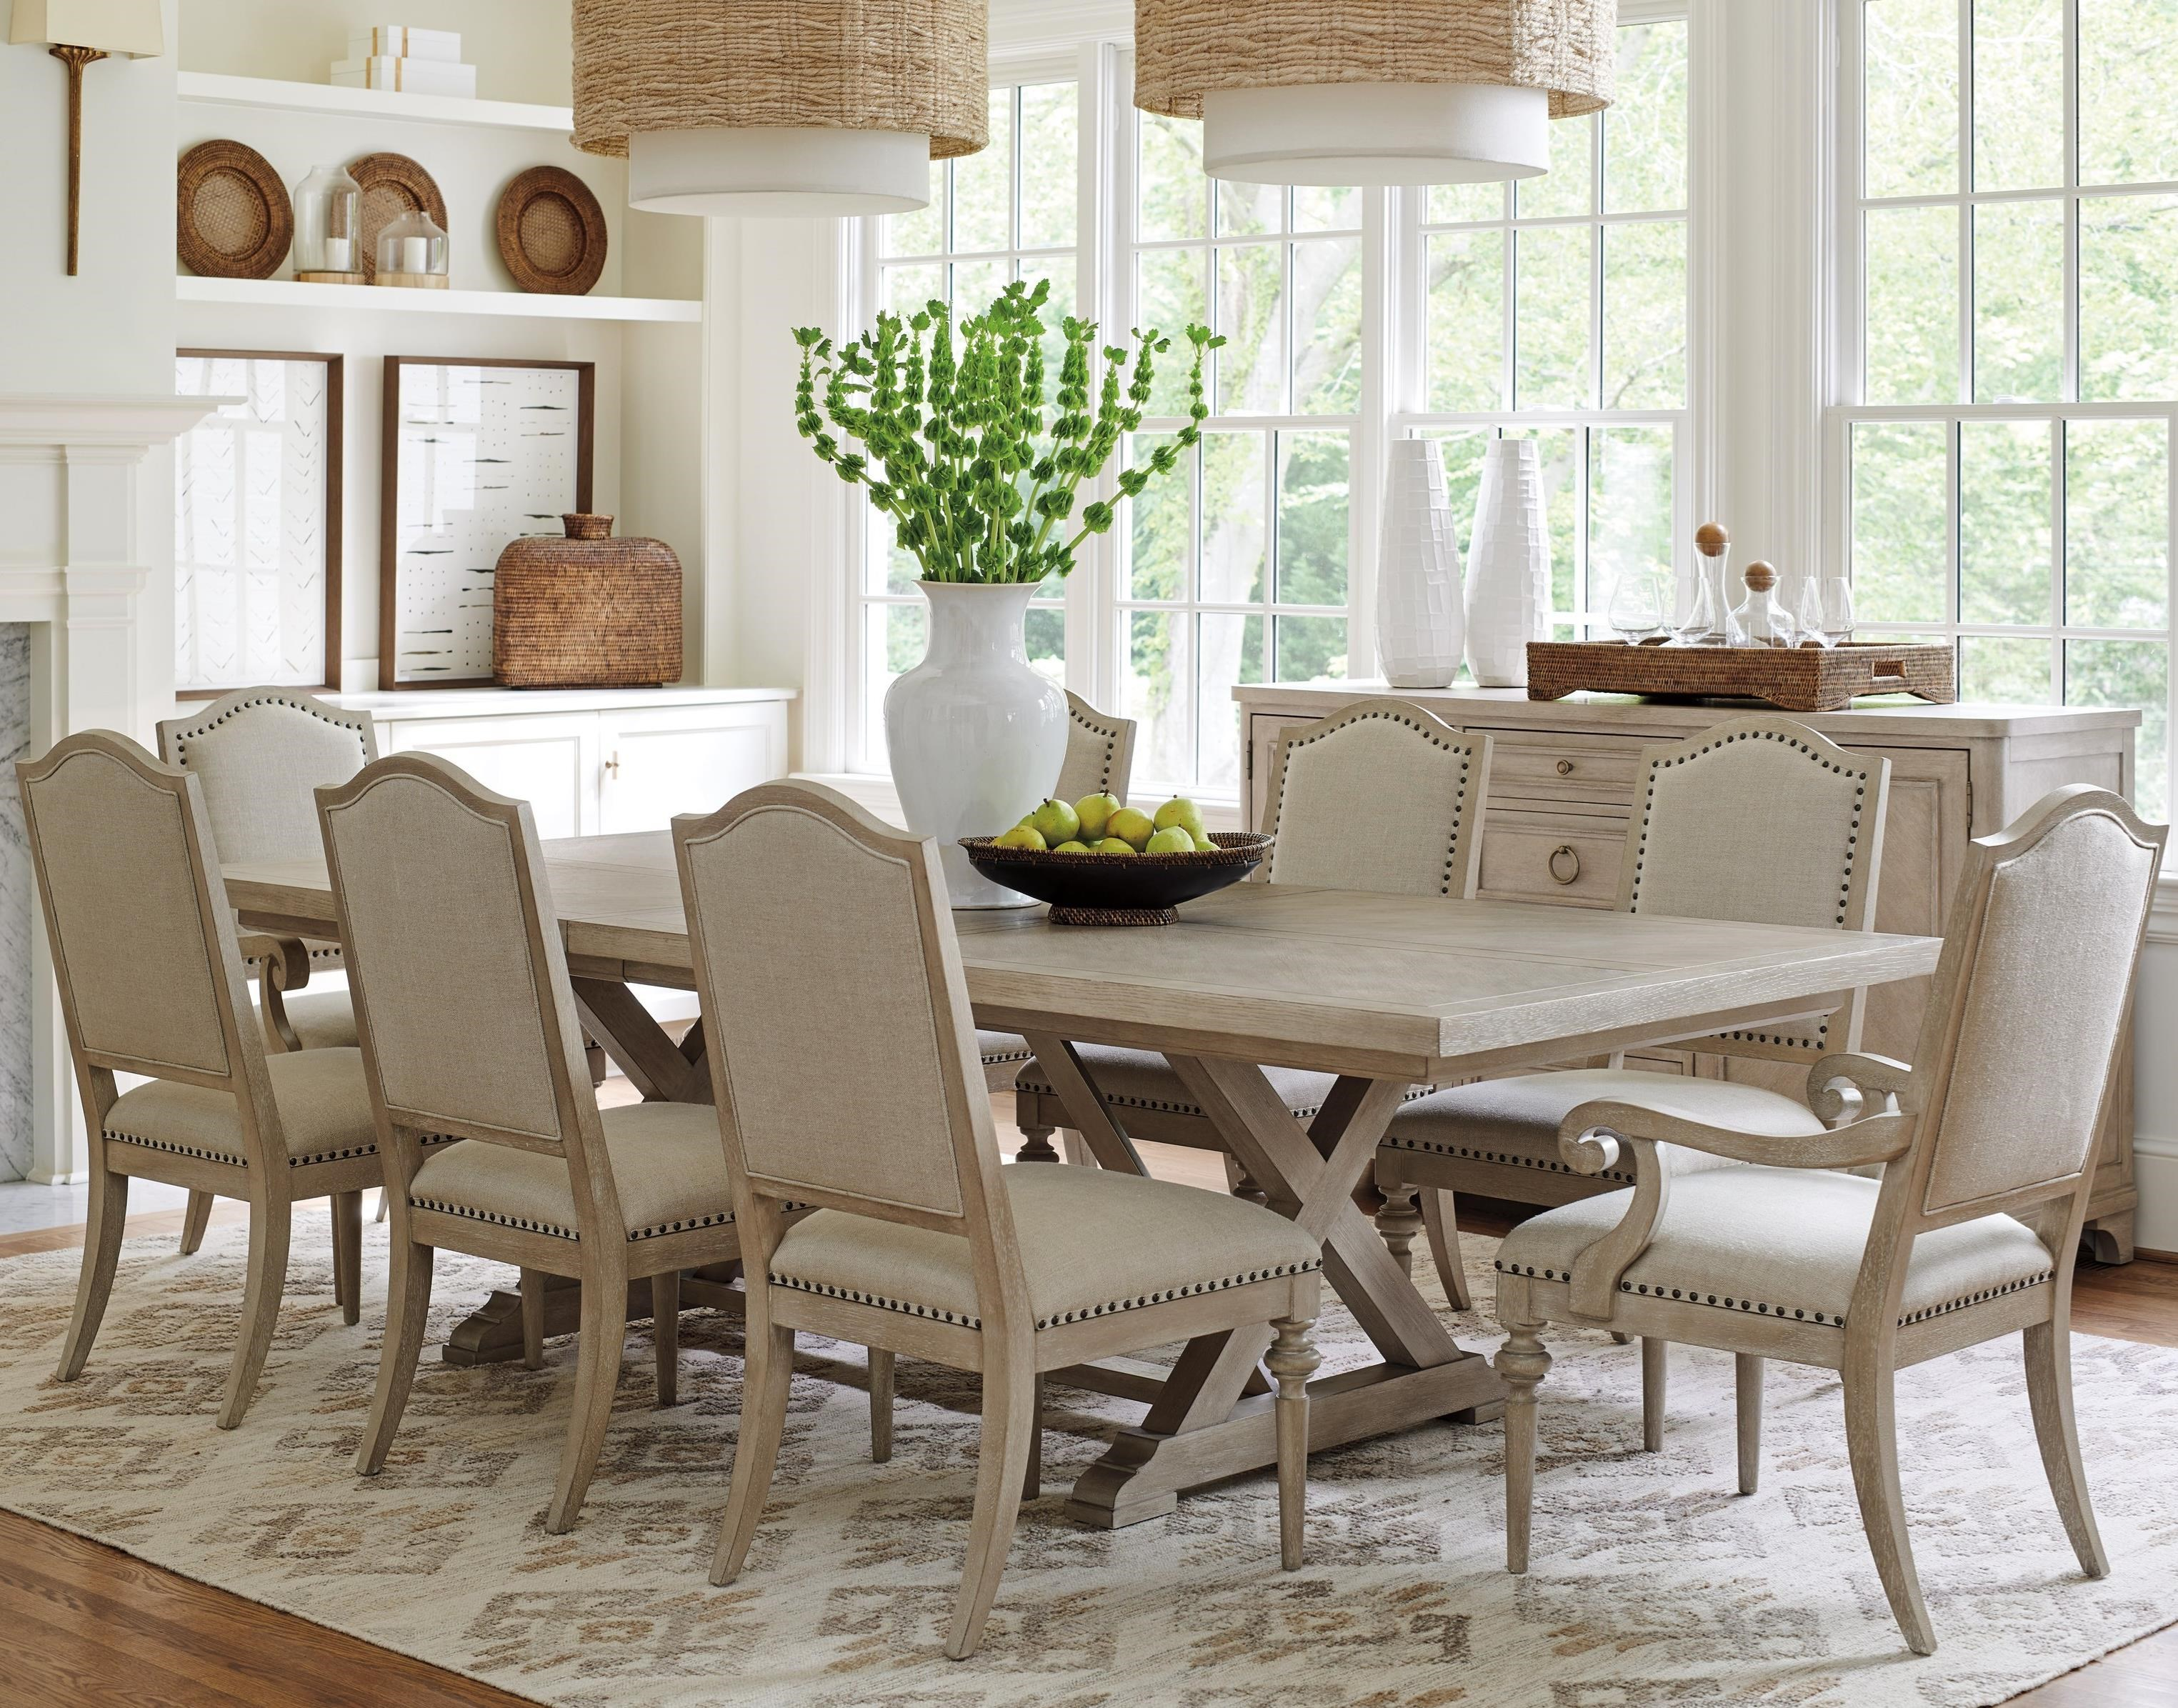 Malibu 9-Piece Dining Set by Barclay Butera at Baer's Furniture